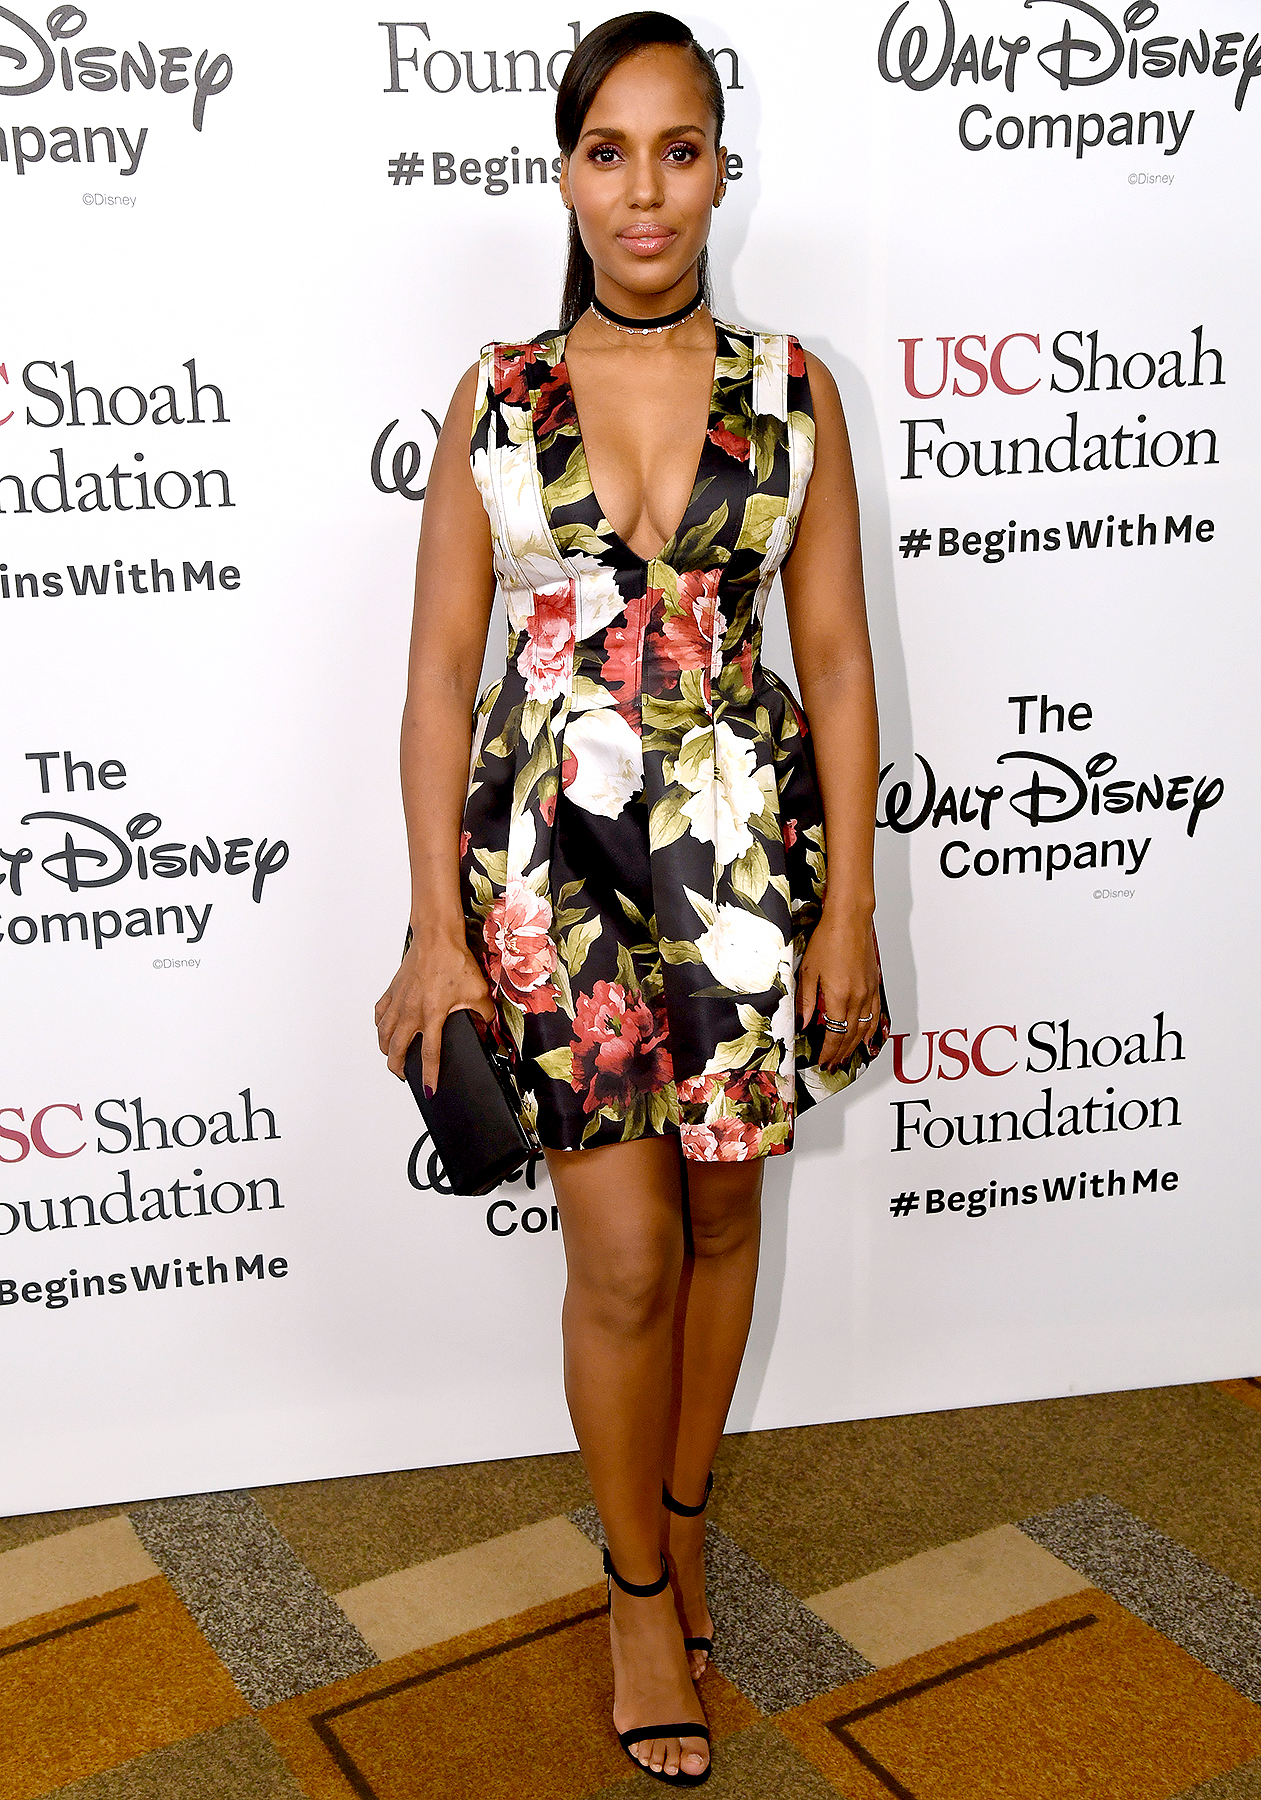 Kerry Washington attends Ambassadors for Humanity Gala Benefiting USC Shoah Foundation at the Ray Dolby Ballroom at Hollywood & Highland Center on December 8, 2016 in Hollywood, California.